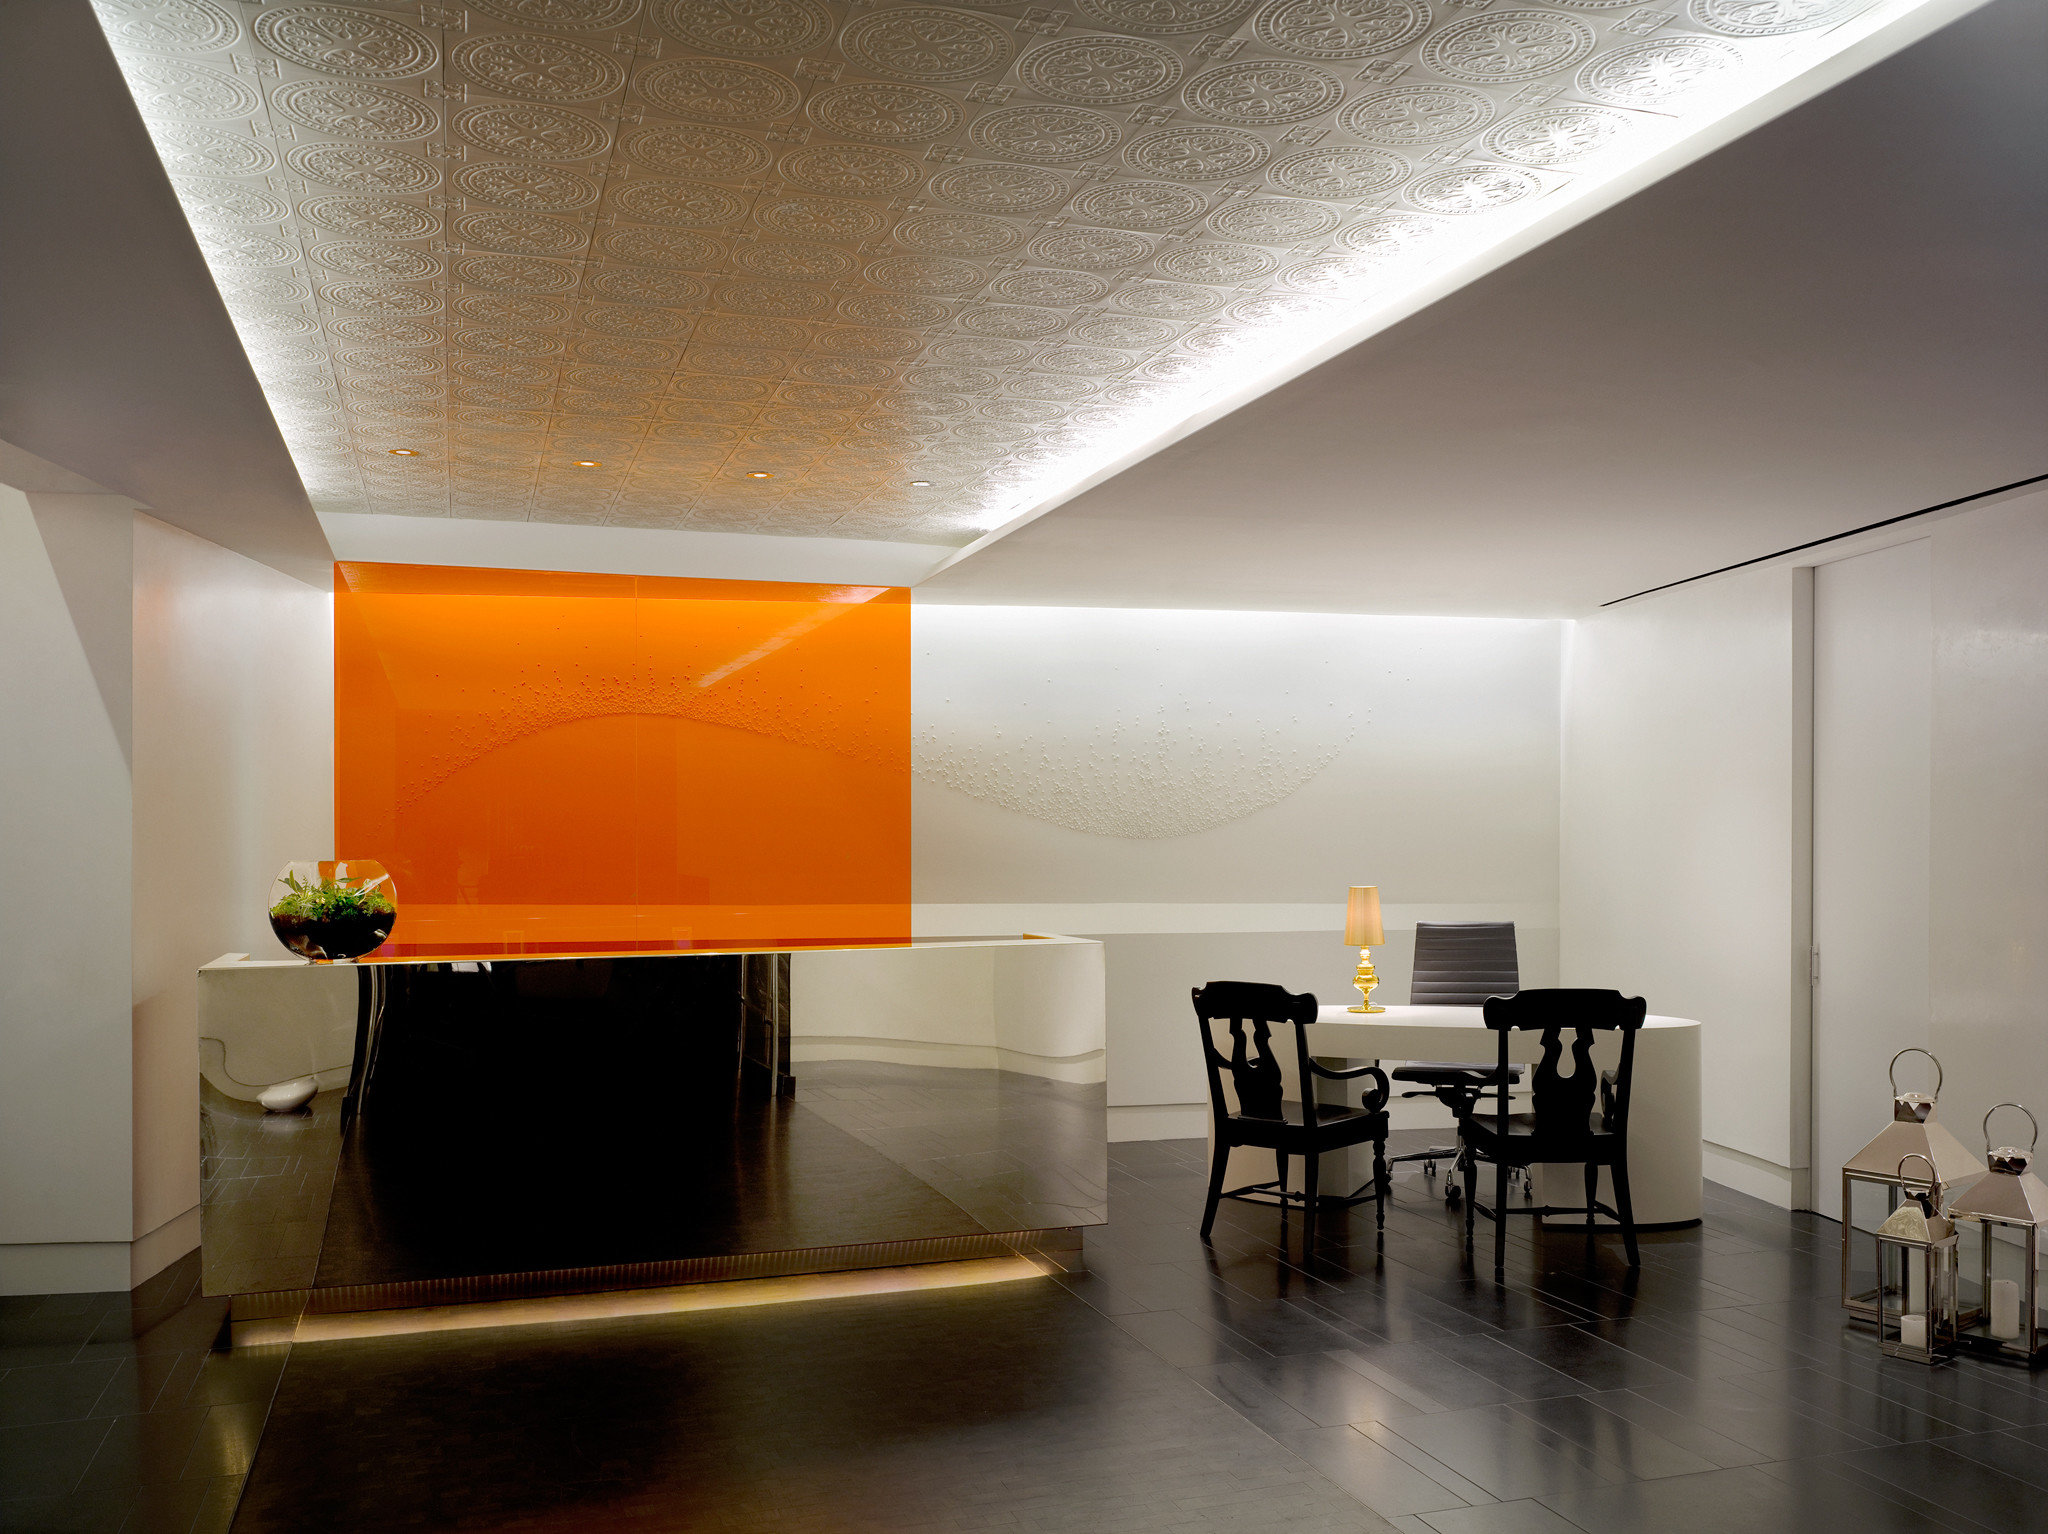 City Lobby Architecture house daylighting lighting tourist attraction